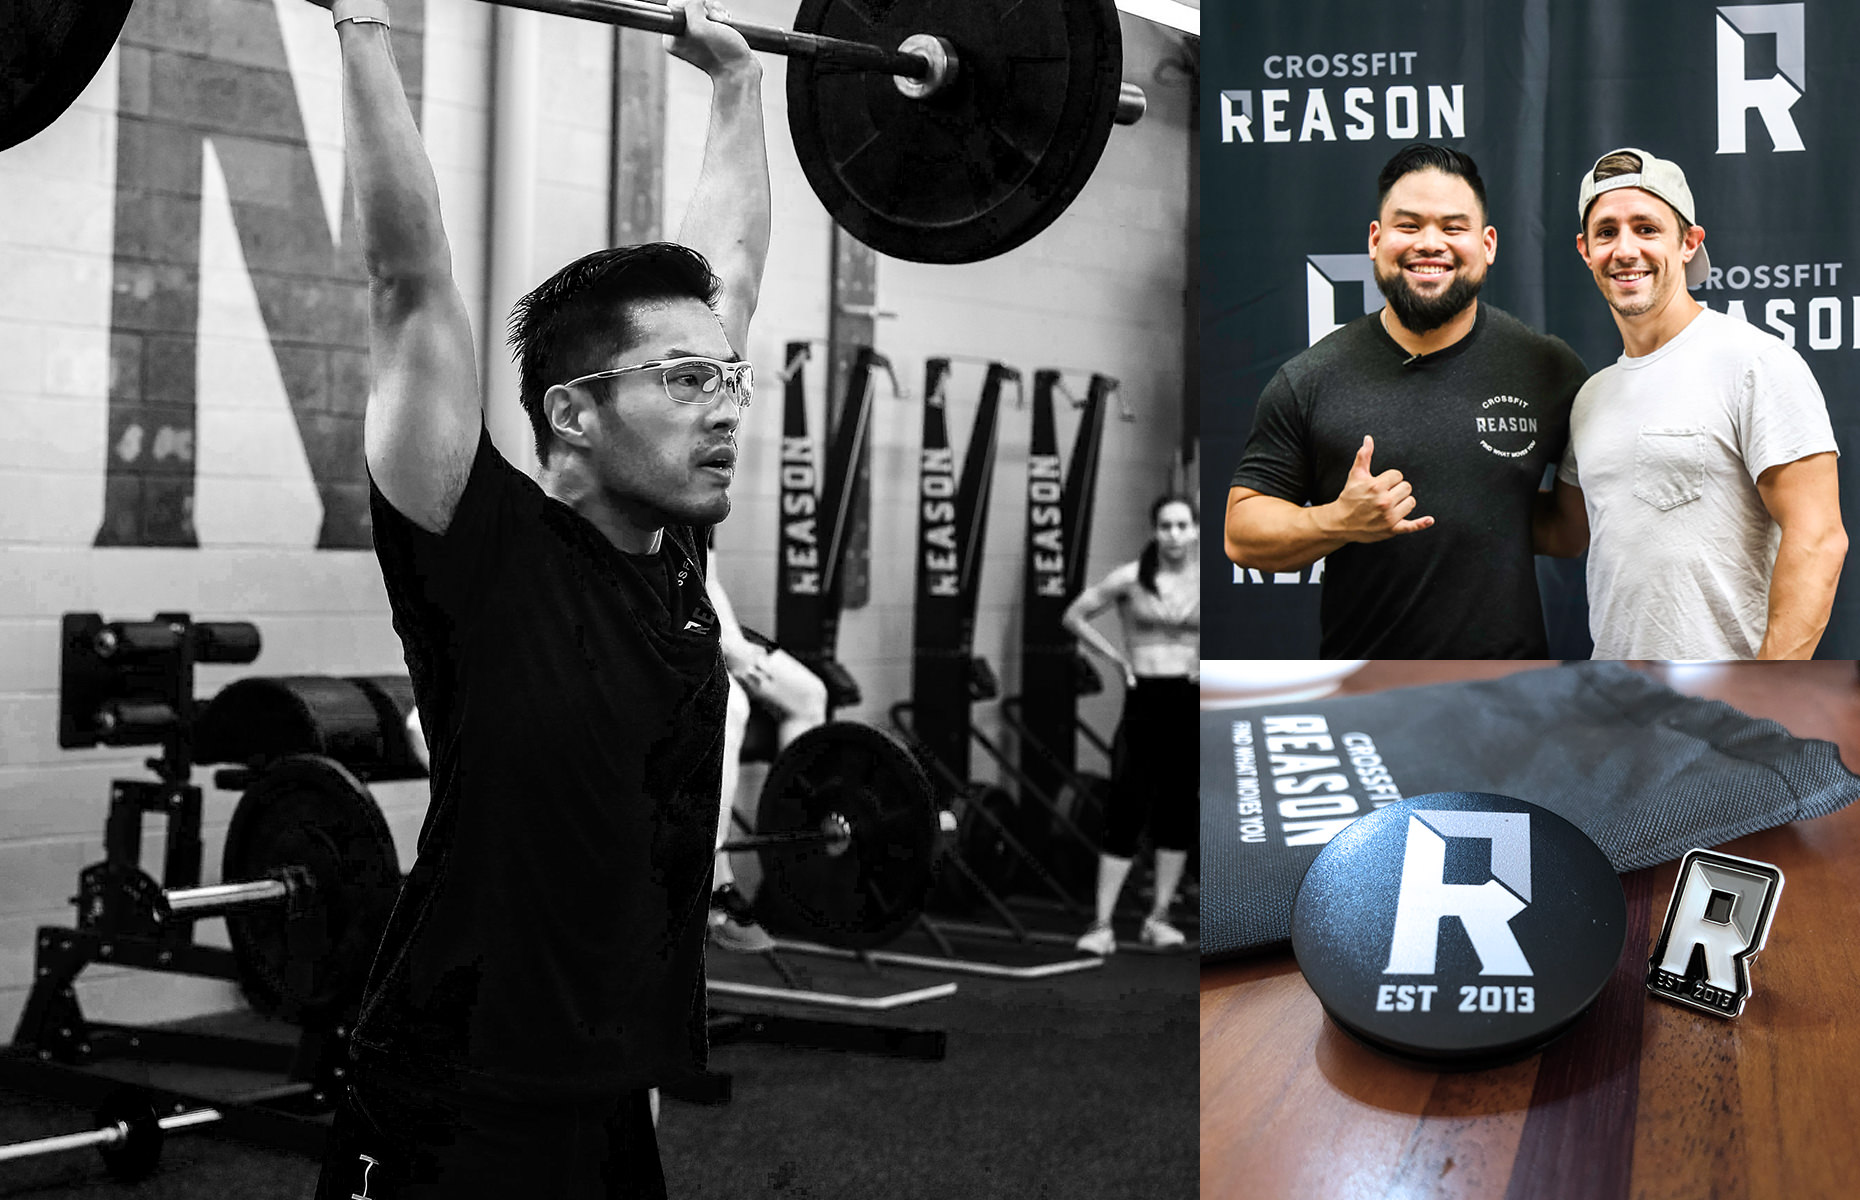 CrossFit Reason Swag and Pride